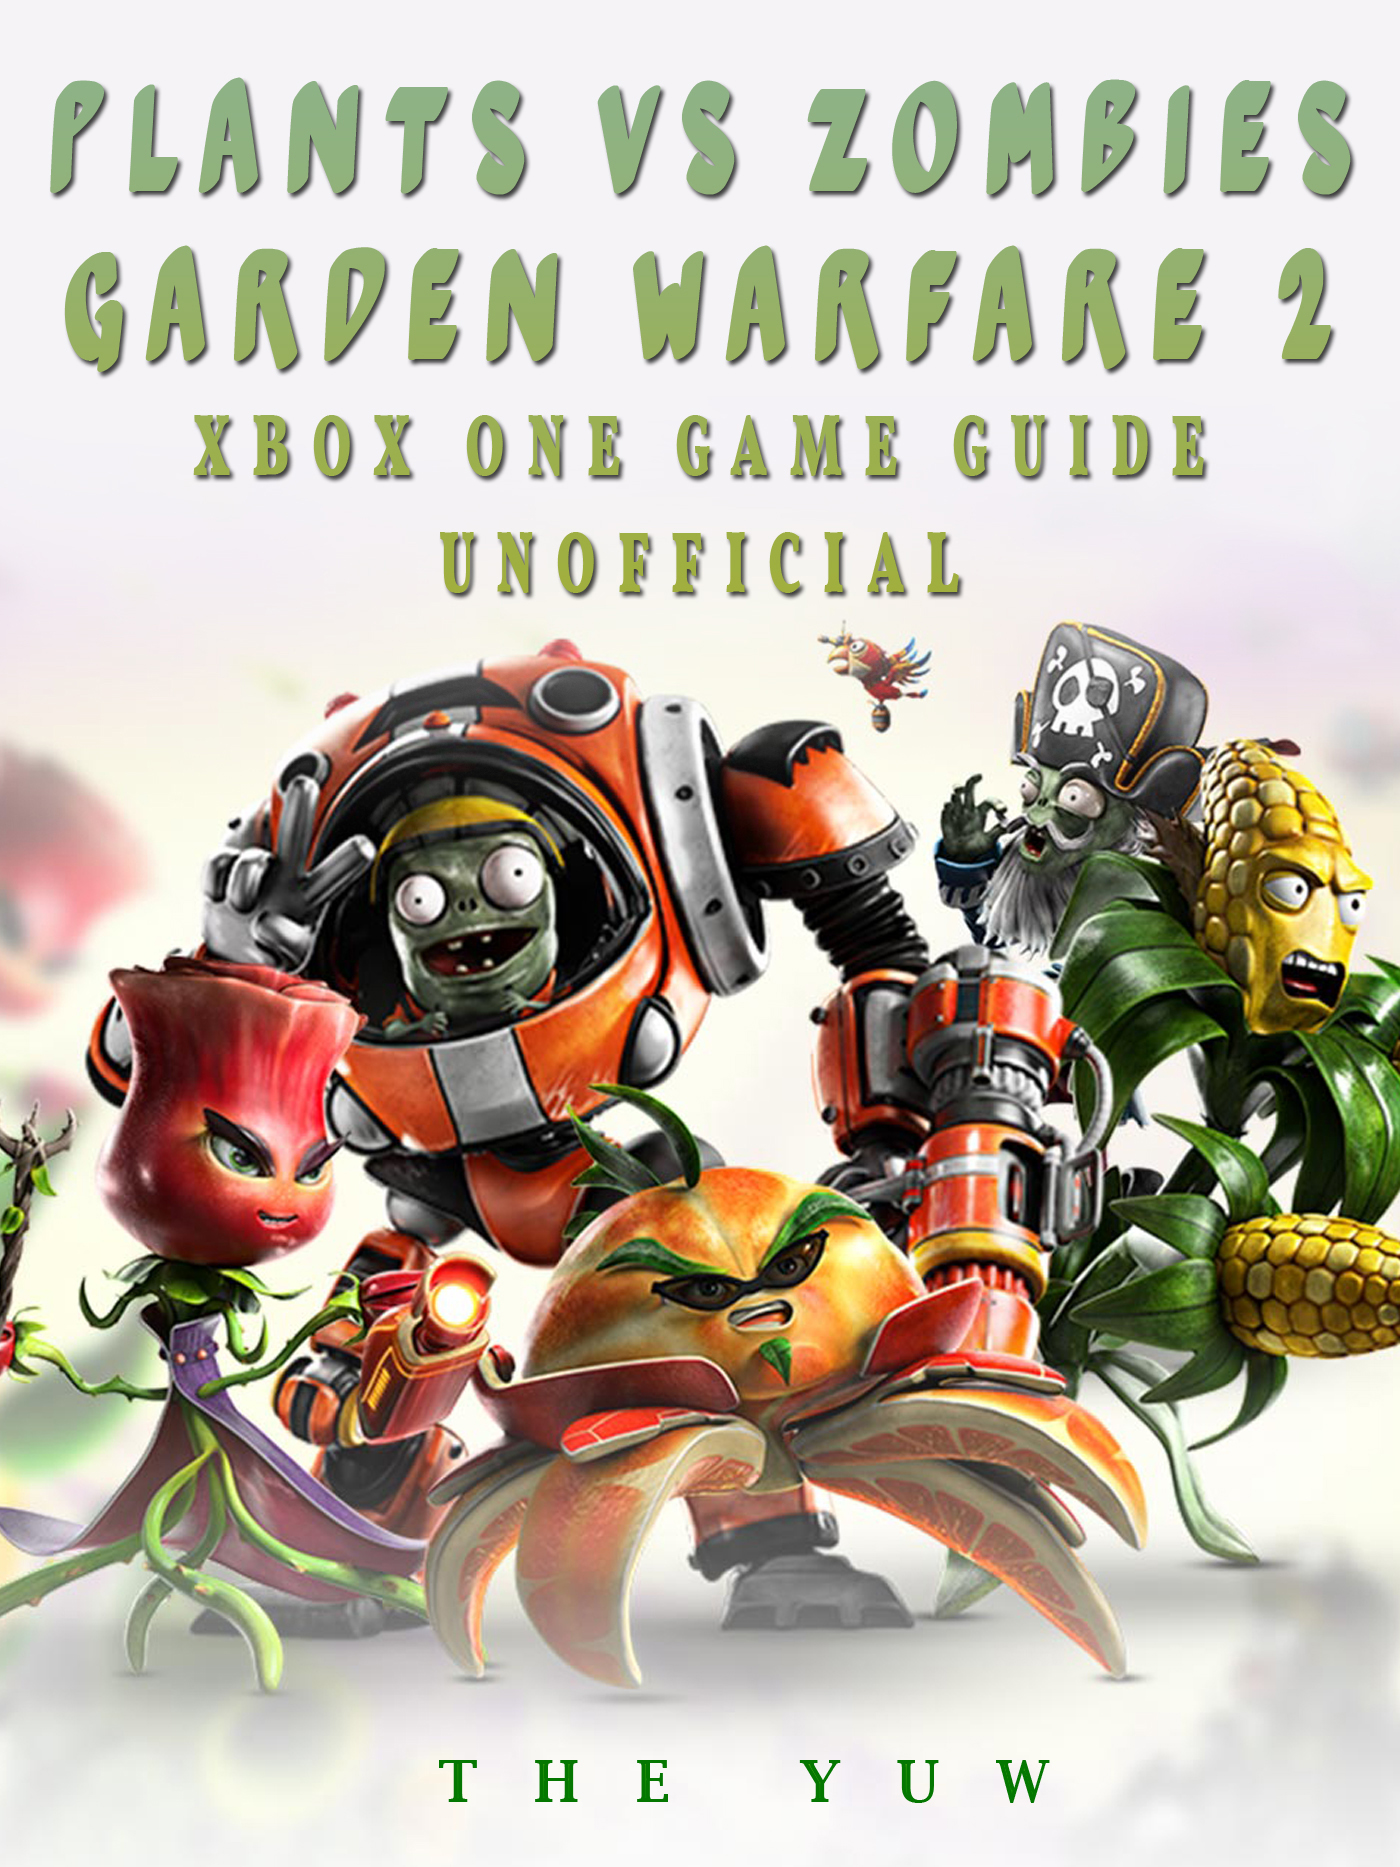 Plants vs Zombies Garden Warfare 2 Xbox One Game Guide Unofficial By The Yuw